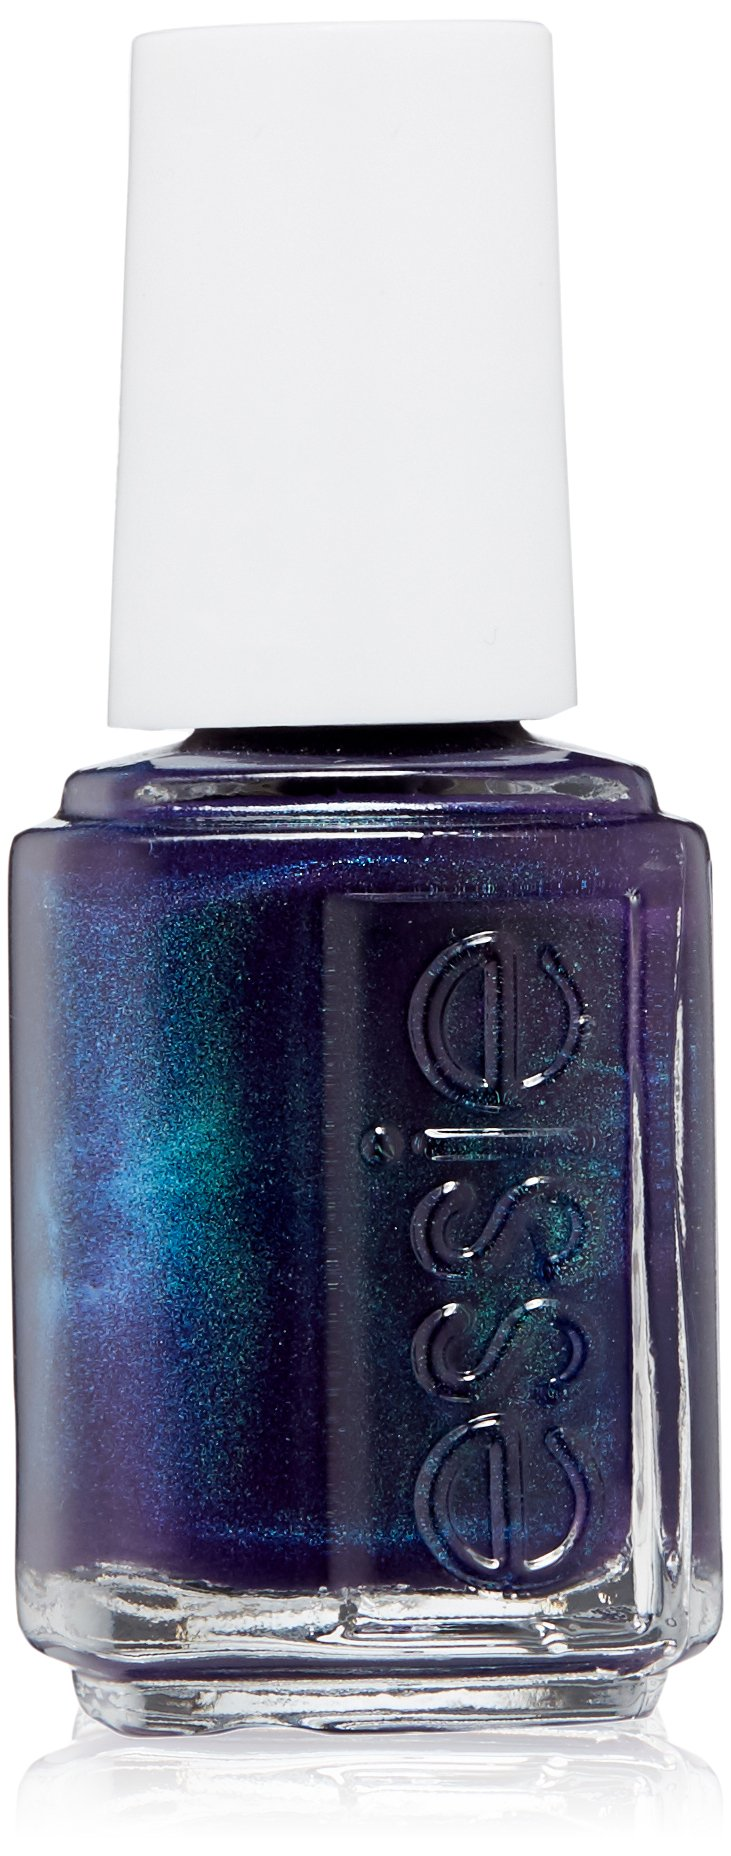 essie Fall 2017 Nail Polish Collection